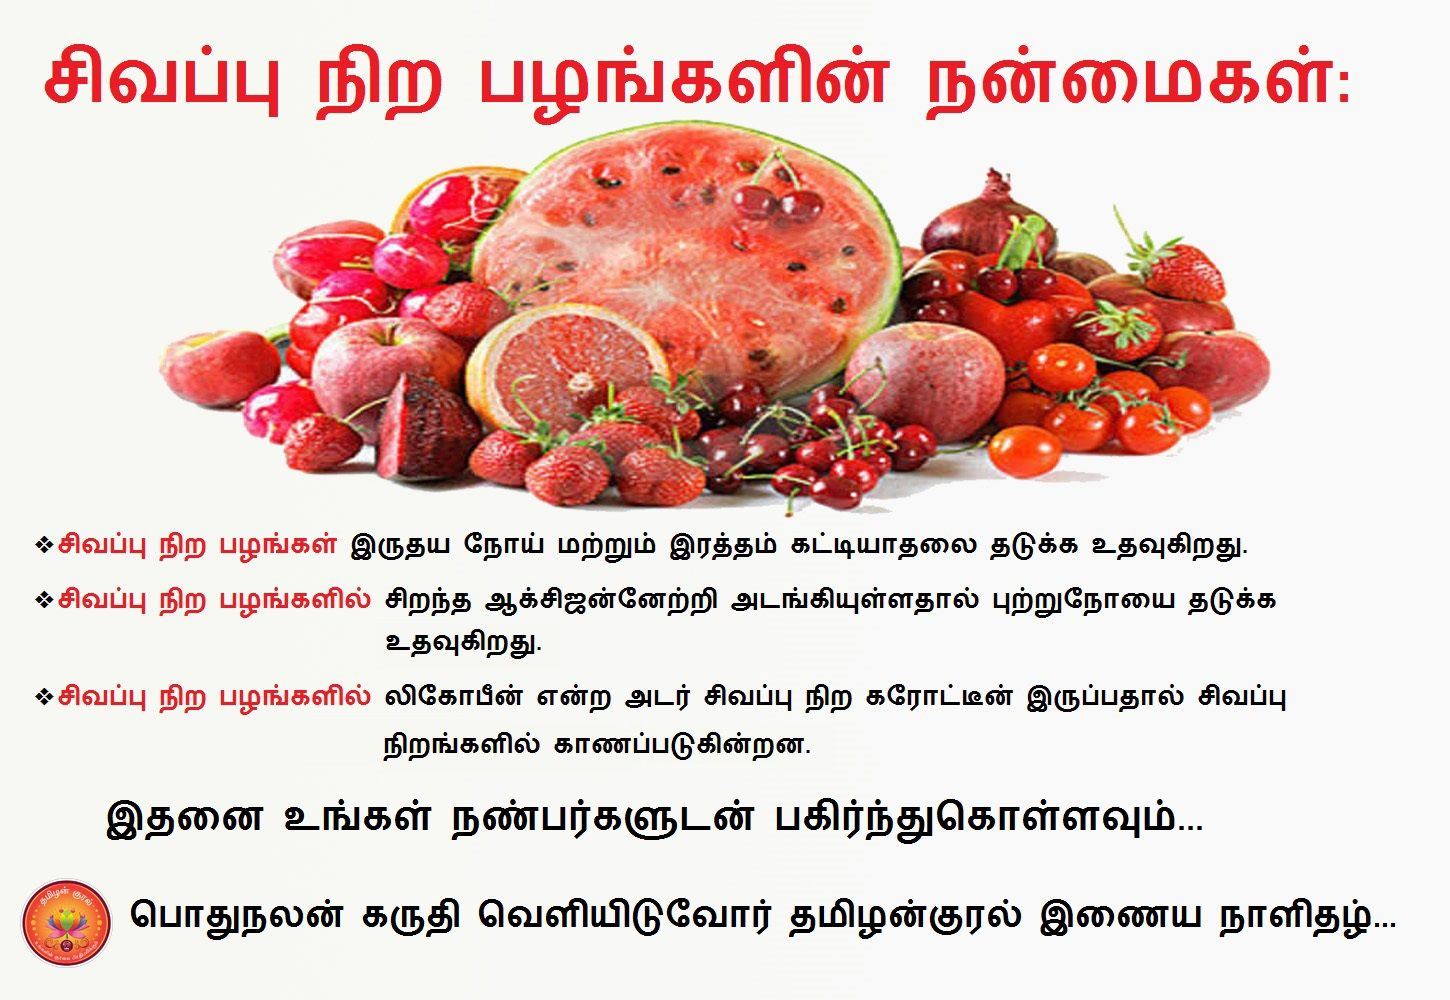 health benefits of red fruits in tamil Food infographic